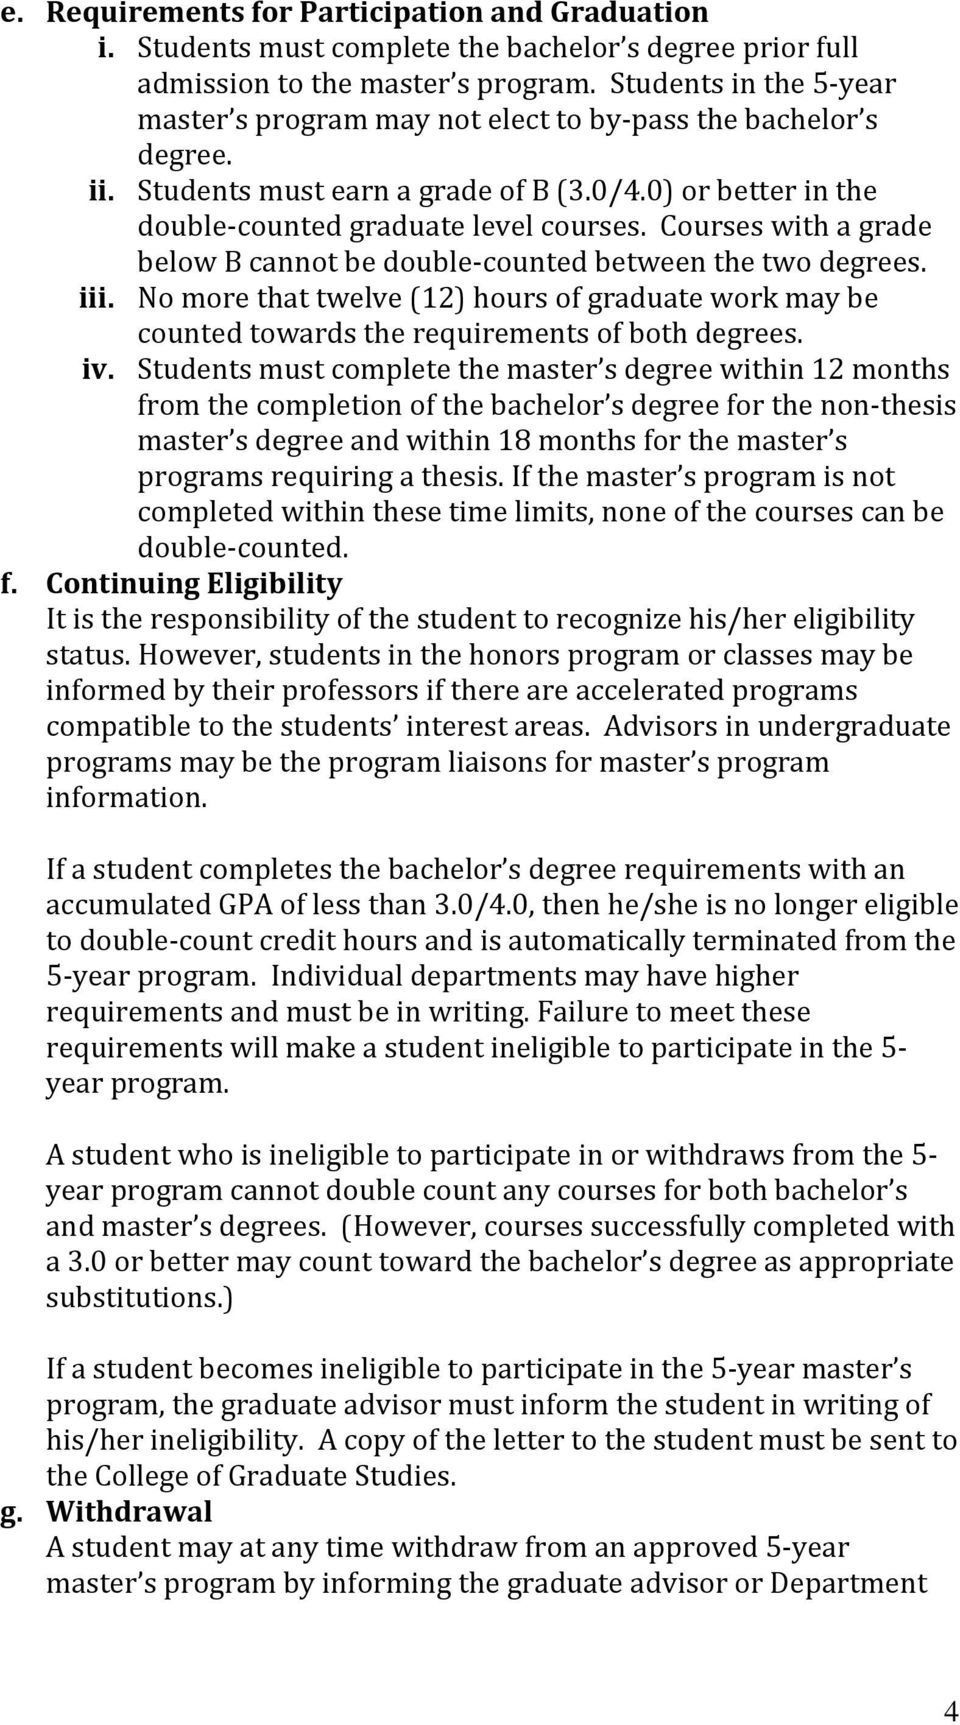 Courses with a grade below B cannot be double-counted between the two degrees. iii. No more that twelve (12) hours of graduate work may be counted towards the requirements of both degrees. iv.